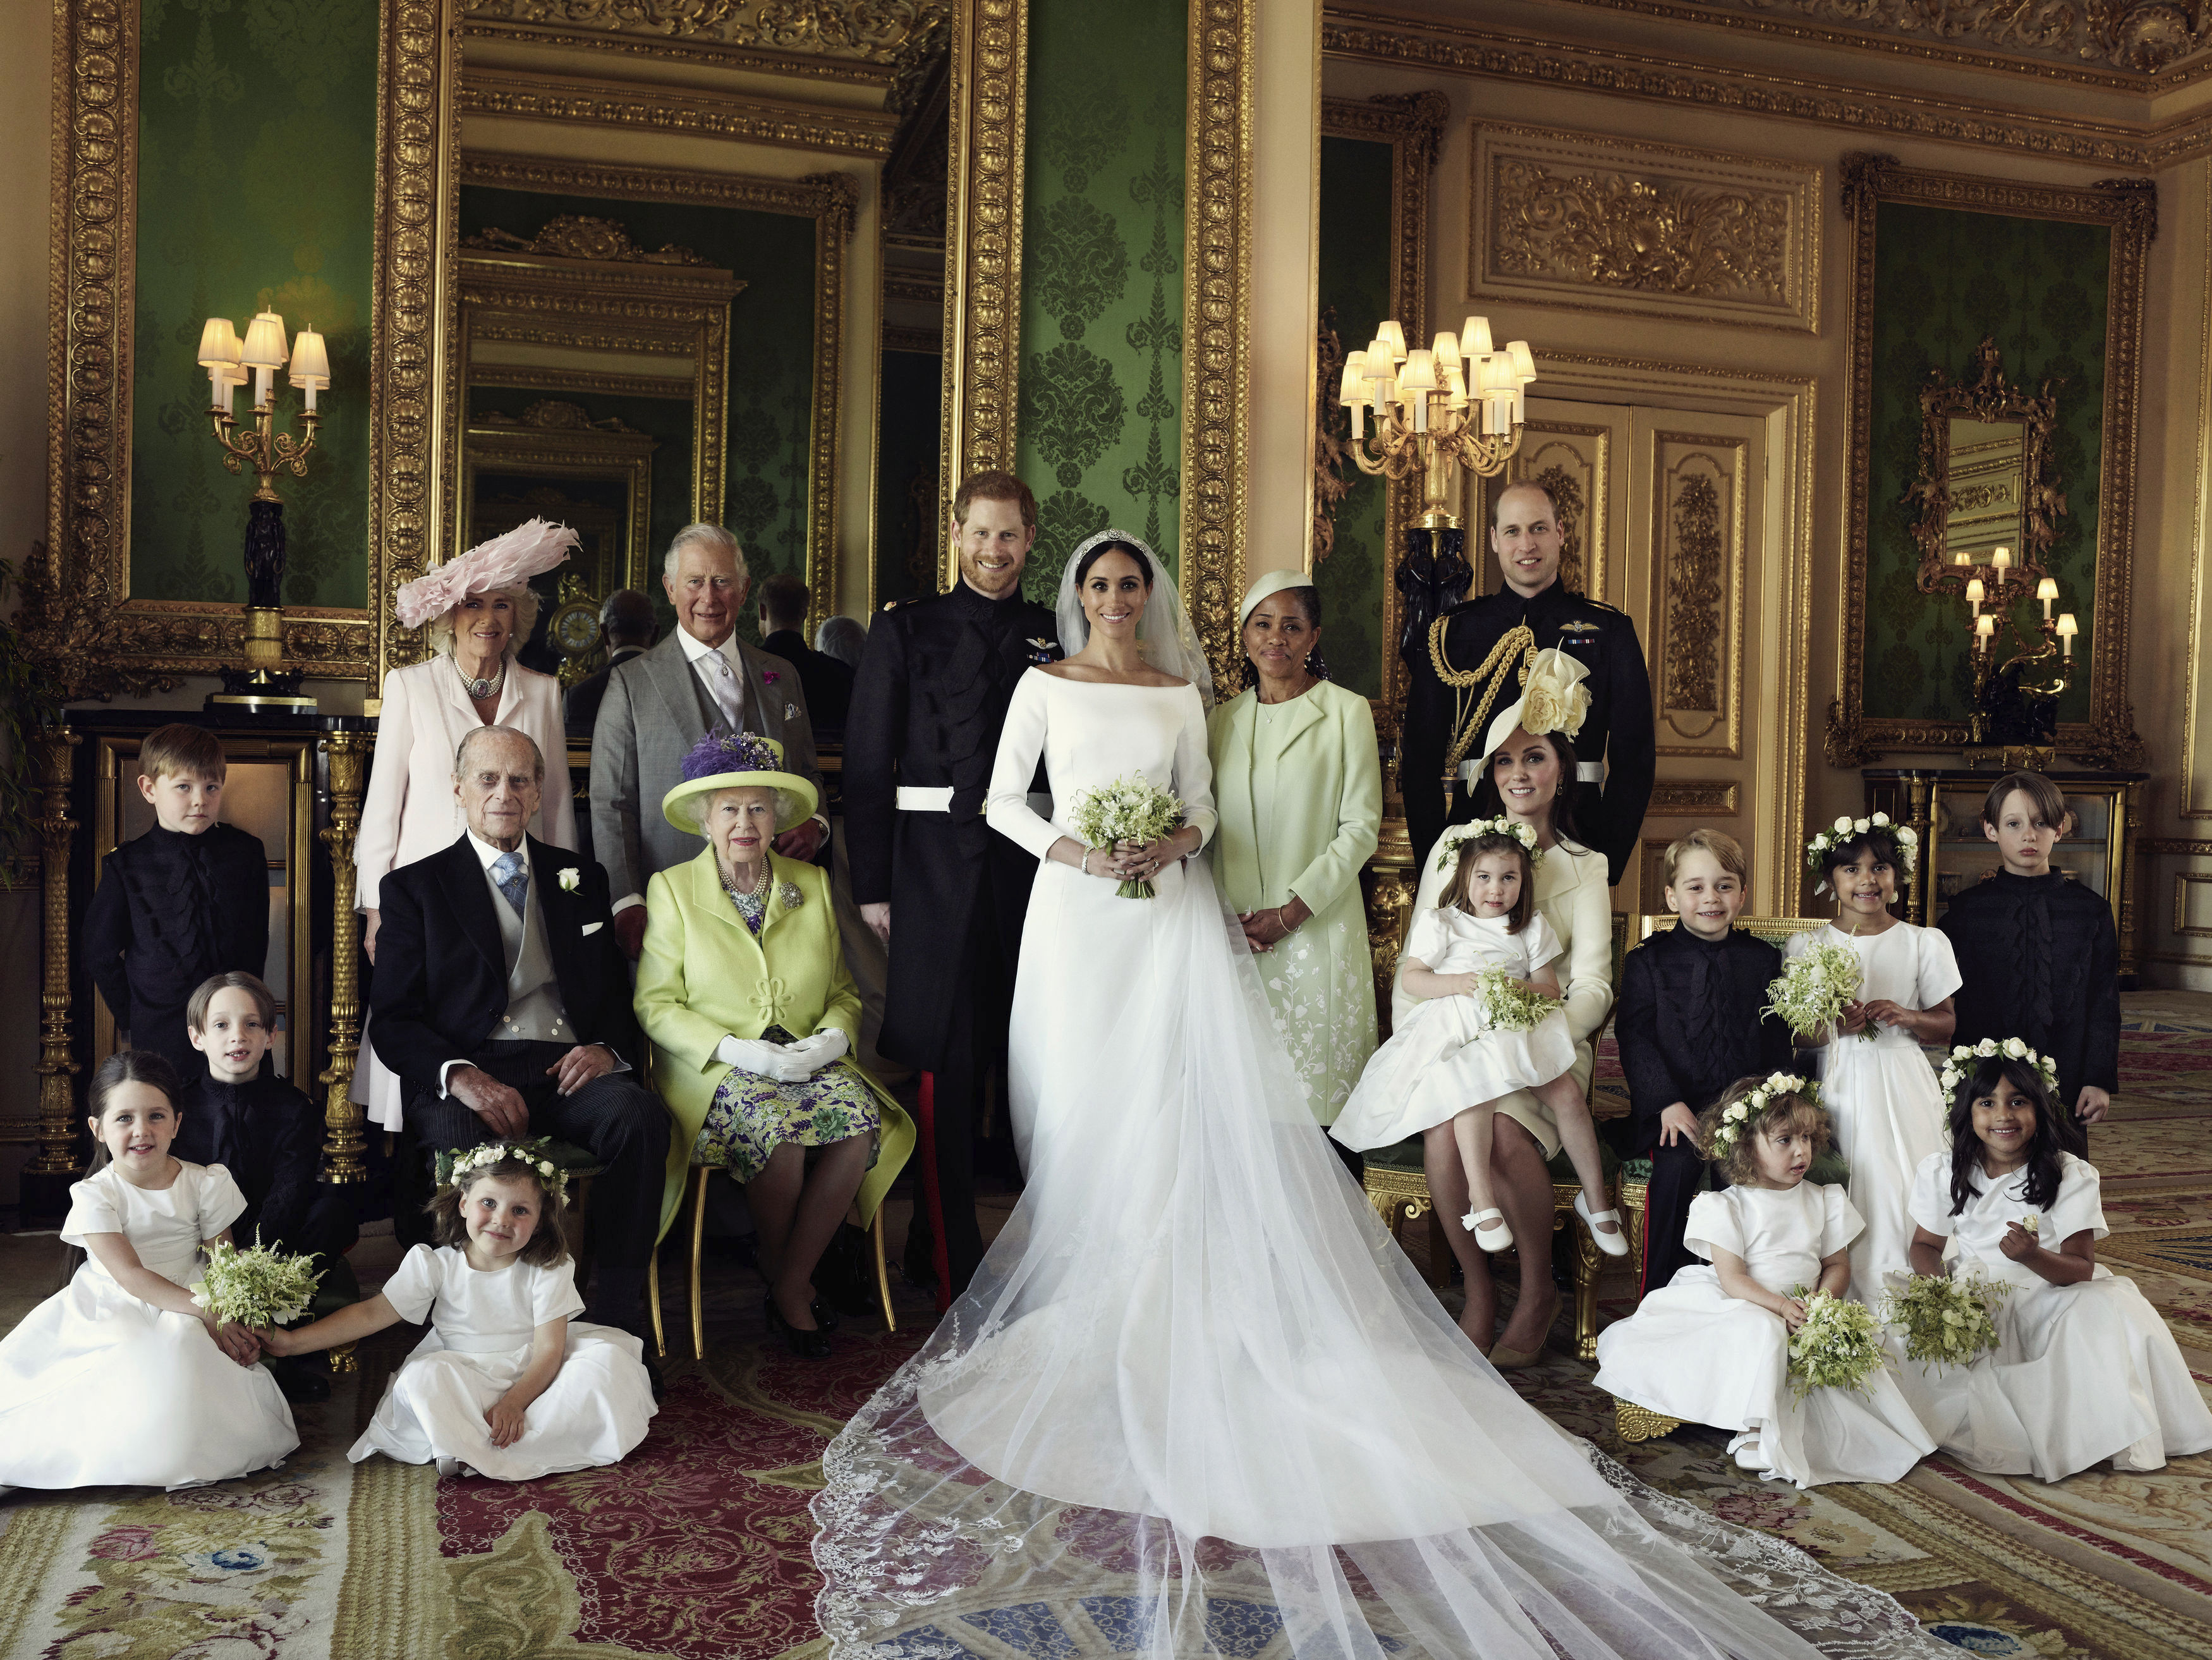 In this photo released by Kensington Palace on Monday May 21, 2018, shows an official wedding photo of Britain's Prince Harry and Meghan Markle, center, in Windsor Castle, Windsor, England, Saturday May 19, 2018. Others in photo from left, back row, Jasper Dyer, Camilla, Duchess of Cornwall, Prince Charles, Doria Ragland, Prince William; center row, Brian Mulroney, Prince Philip, Queen Elizabeth II, Kate, Duchess of Cambridge, Princess Charlotte, Prince George, Rylan Litt, John Mulroney; front row, Ivy Mulroney, Florence van Cutsem, Zalie Warren, Remi Litt. (Alexi Lubomirski/Kensington Palace via AP)